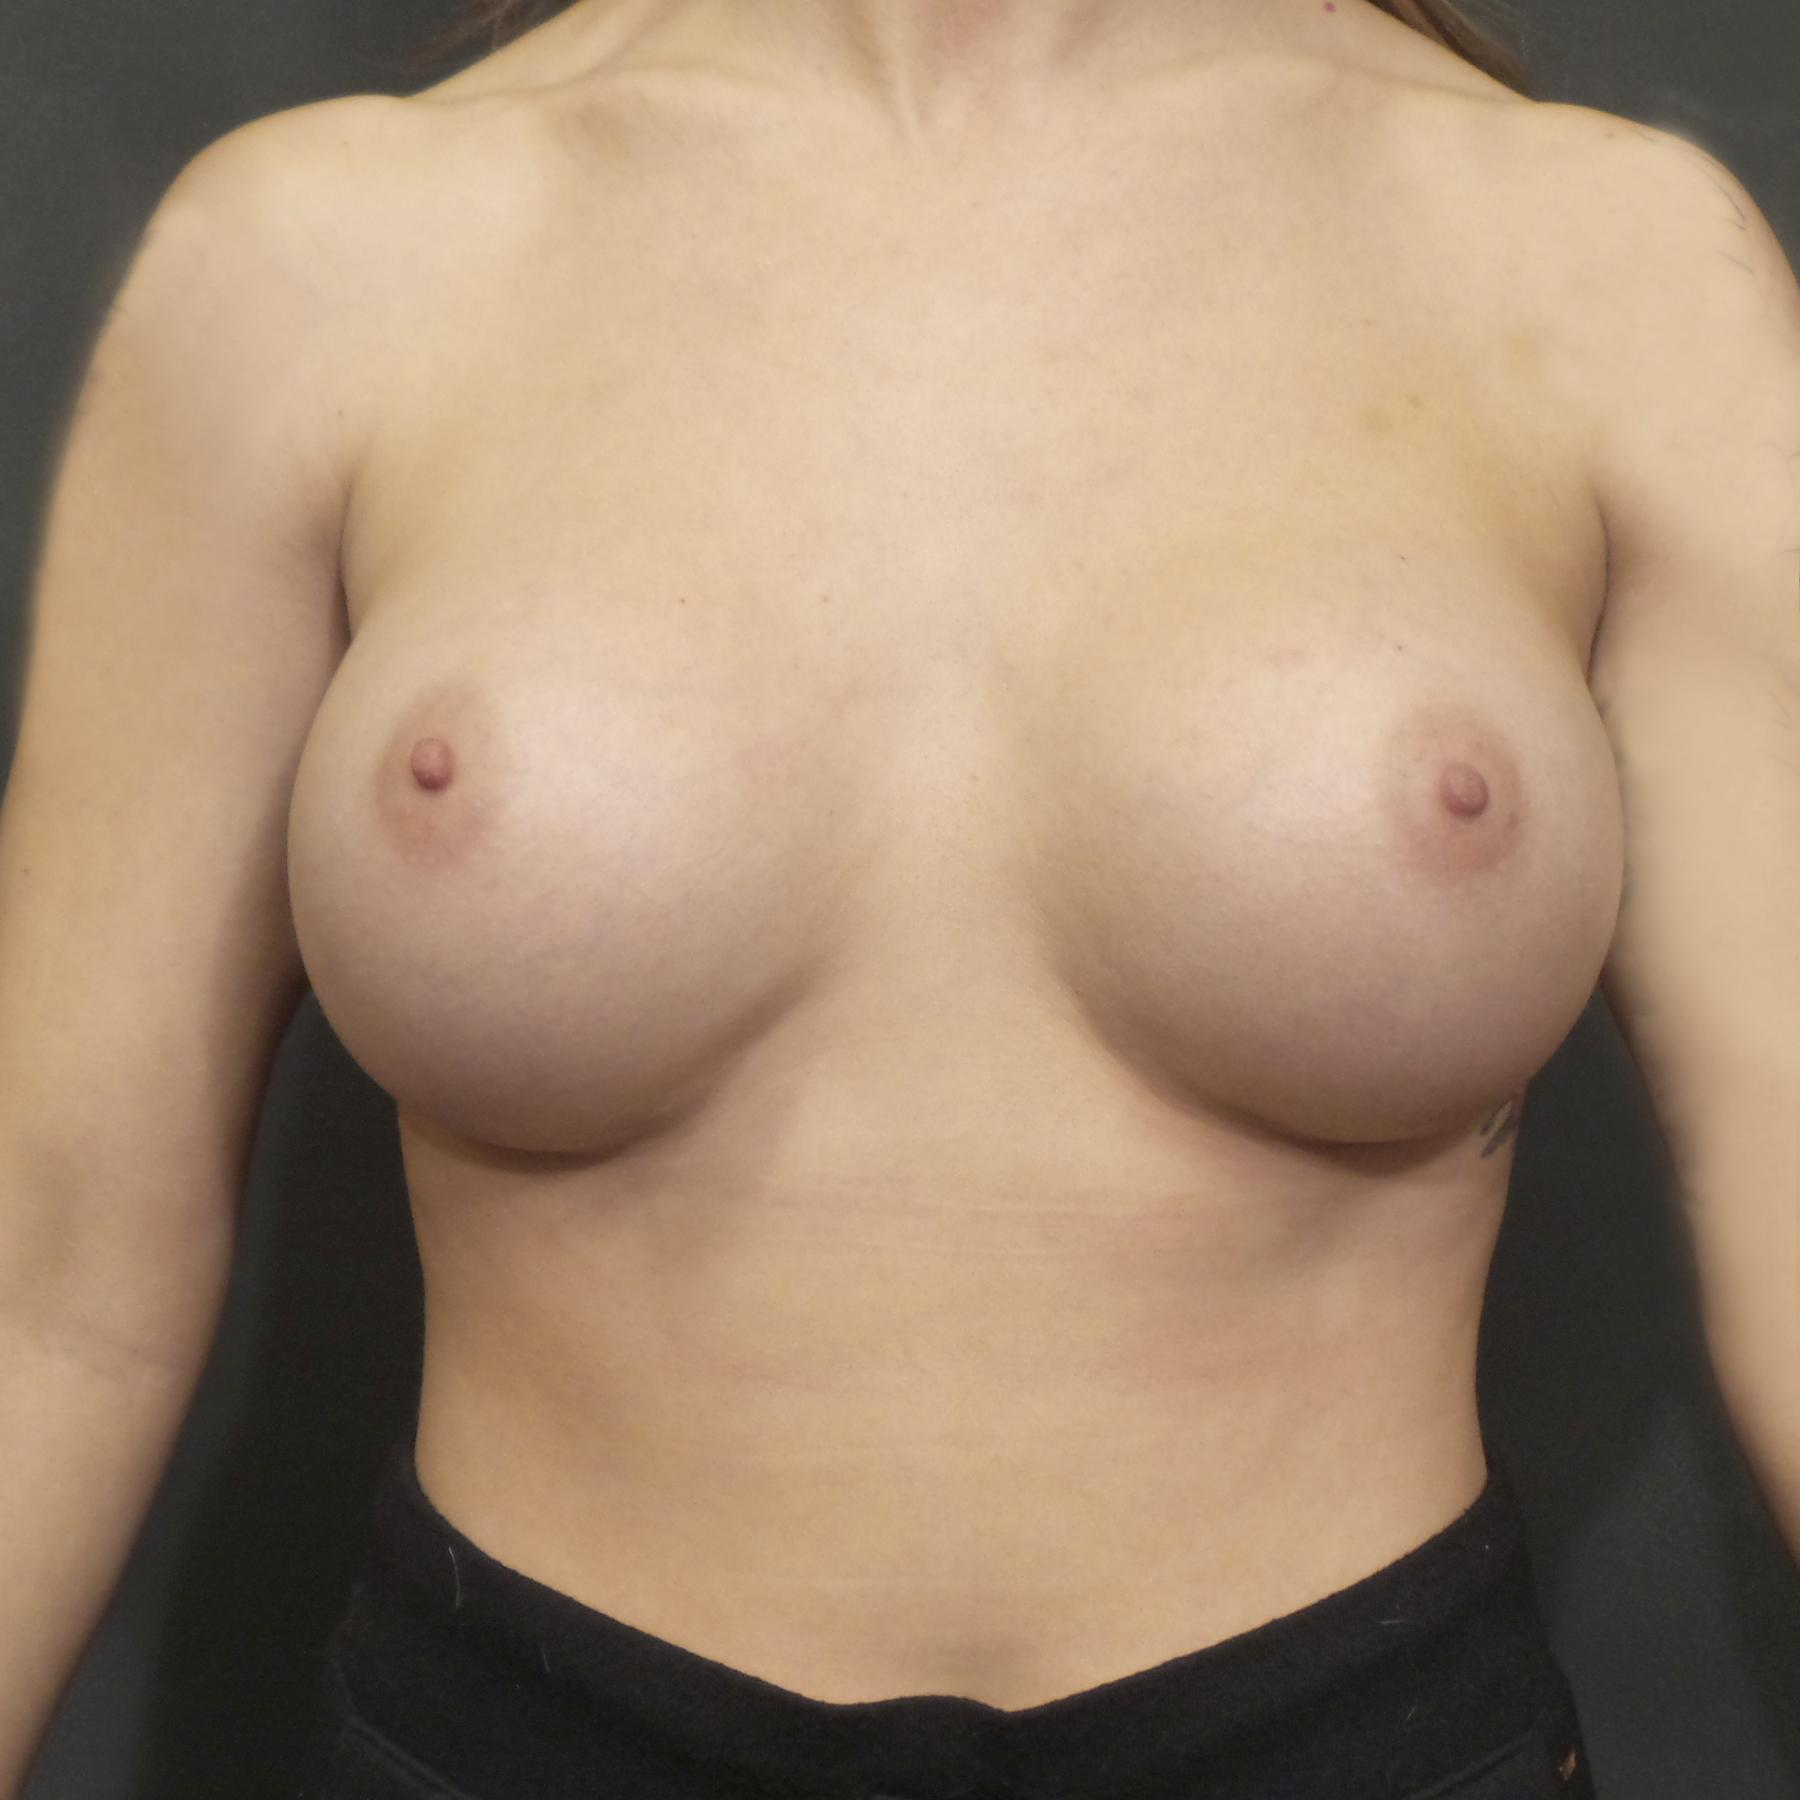 An After photo of a Breast Augmentation Plastic Surgery by Dr. Craig Jonov in Seattle, Bellevue, and Kirkland